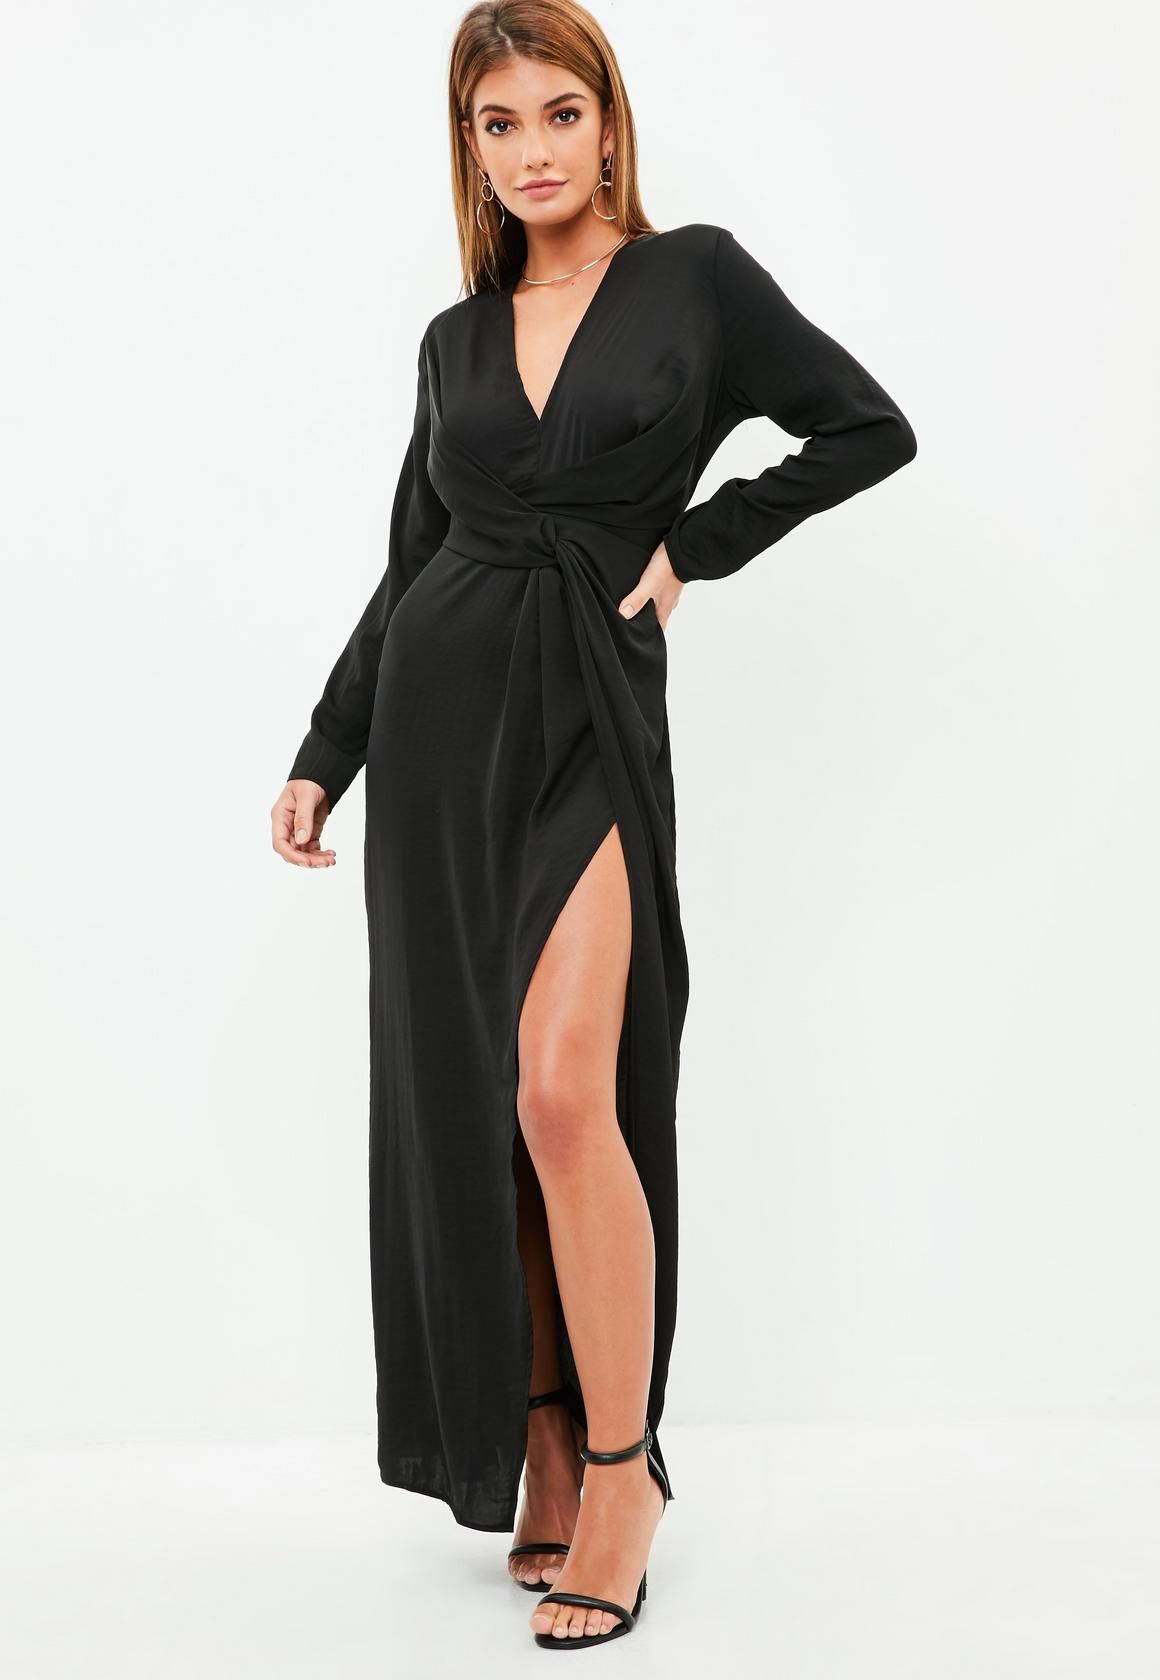 Shop online for Black plunge wrap front maxi dress